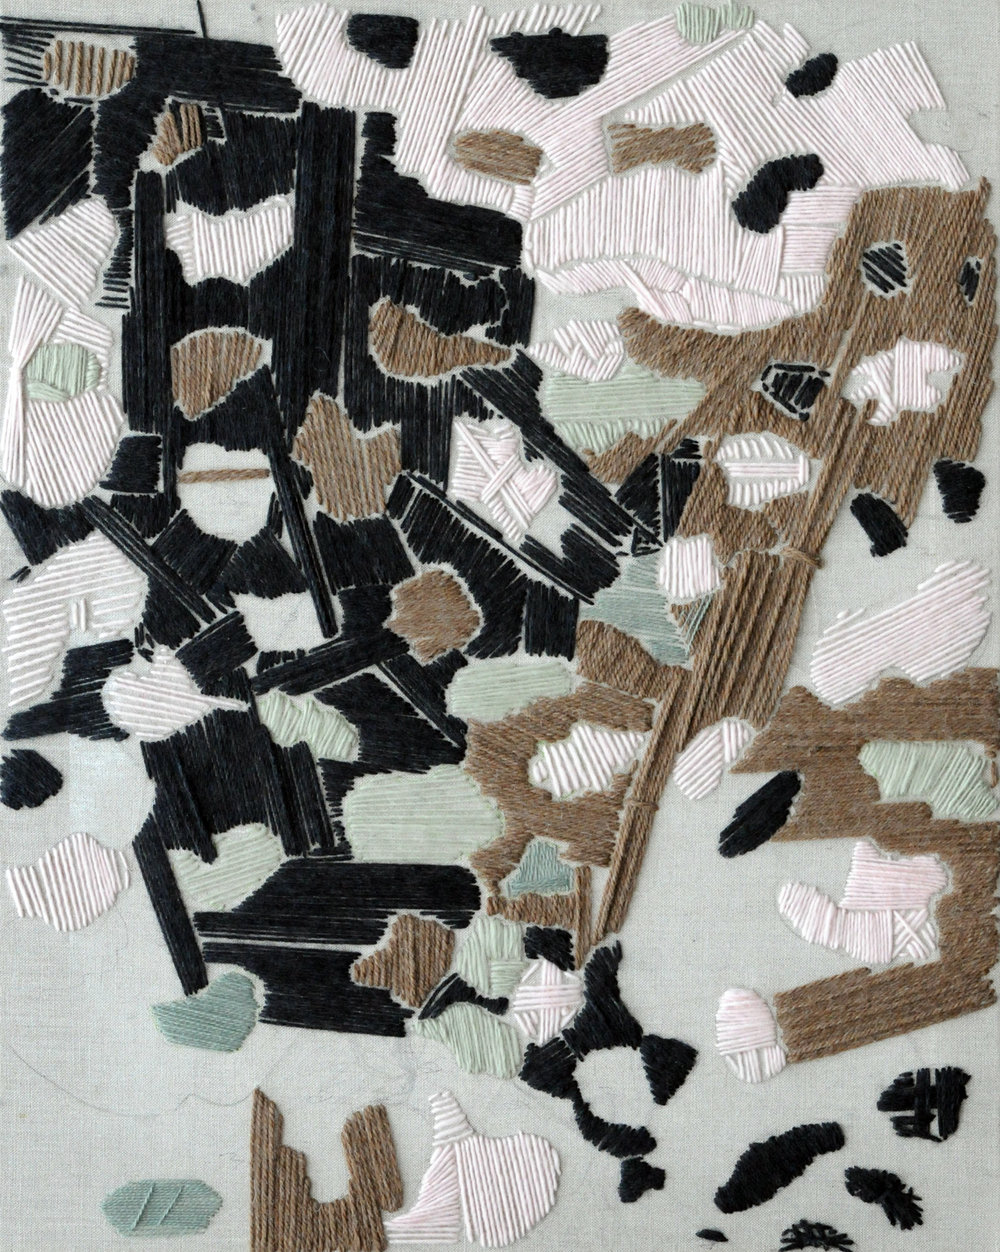 Untitled 4 2012 Wool and Linen 30 x 24 inches